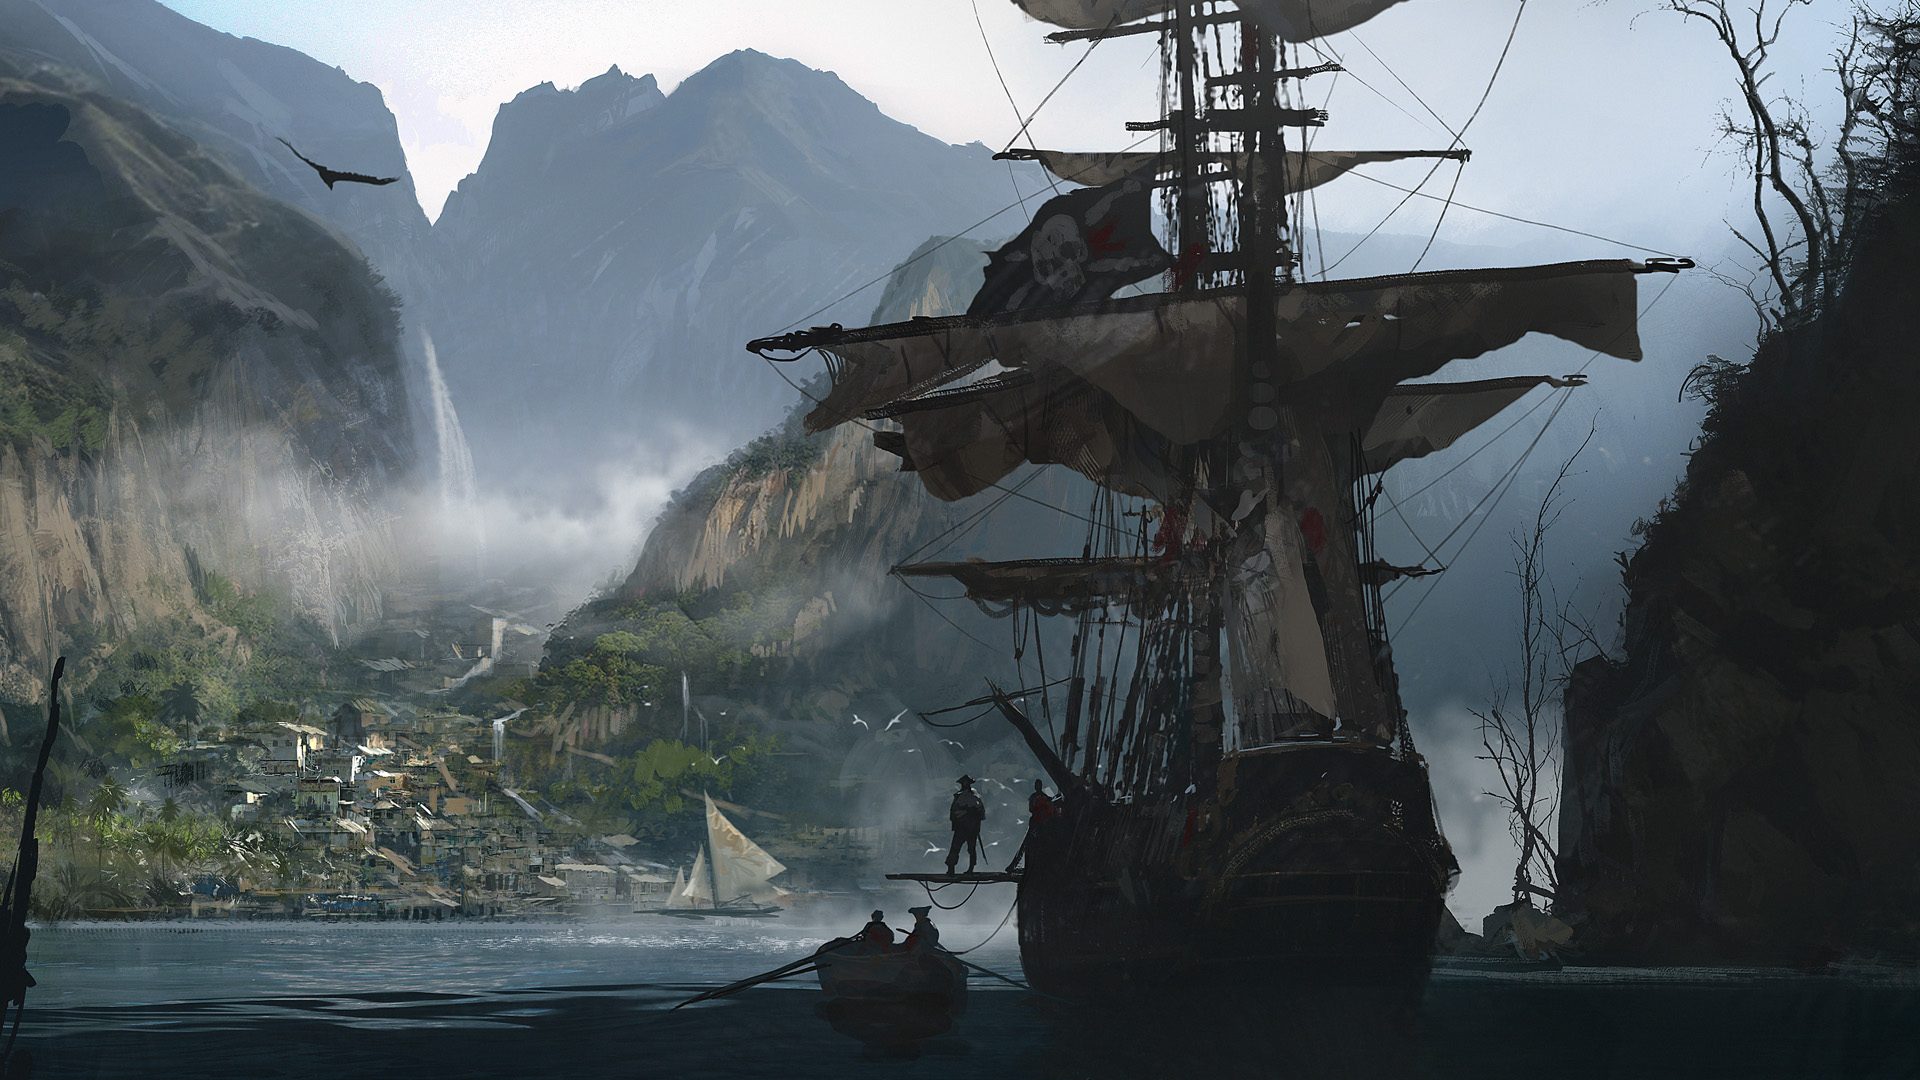 Video_Games_Assassin_s_Creed_Black_Flag_Pirate_Schooner_Ship_Sail_Drawing_Row_Boat_106902